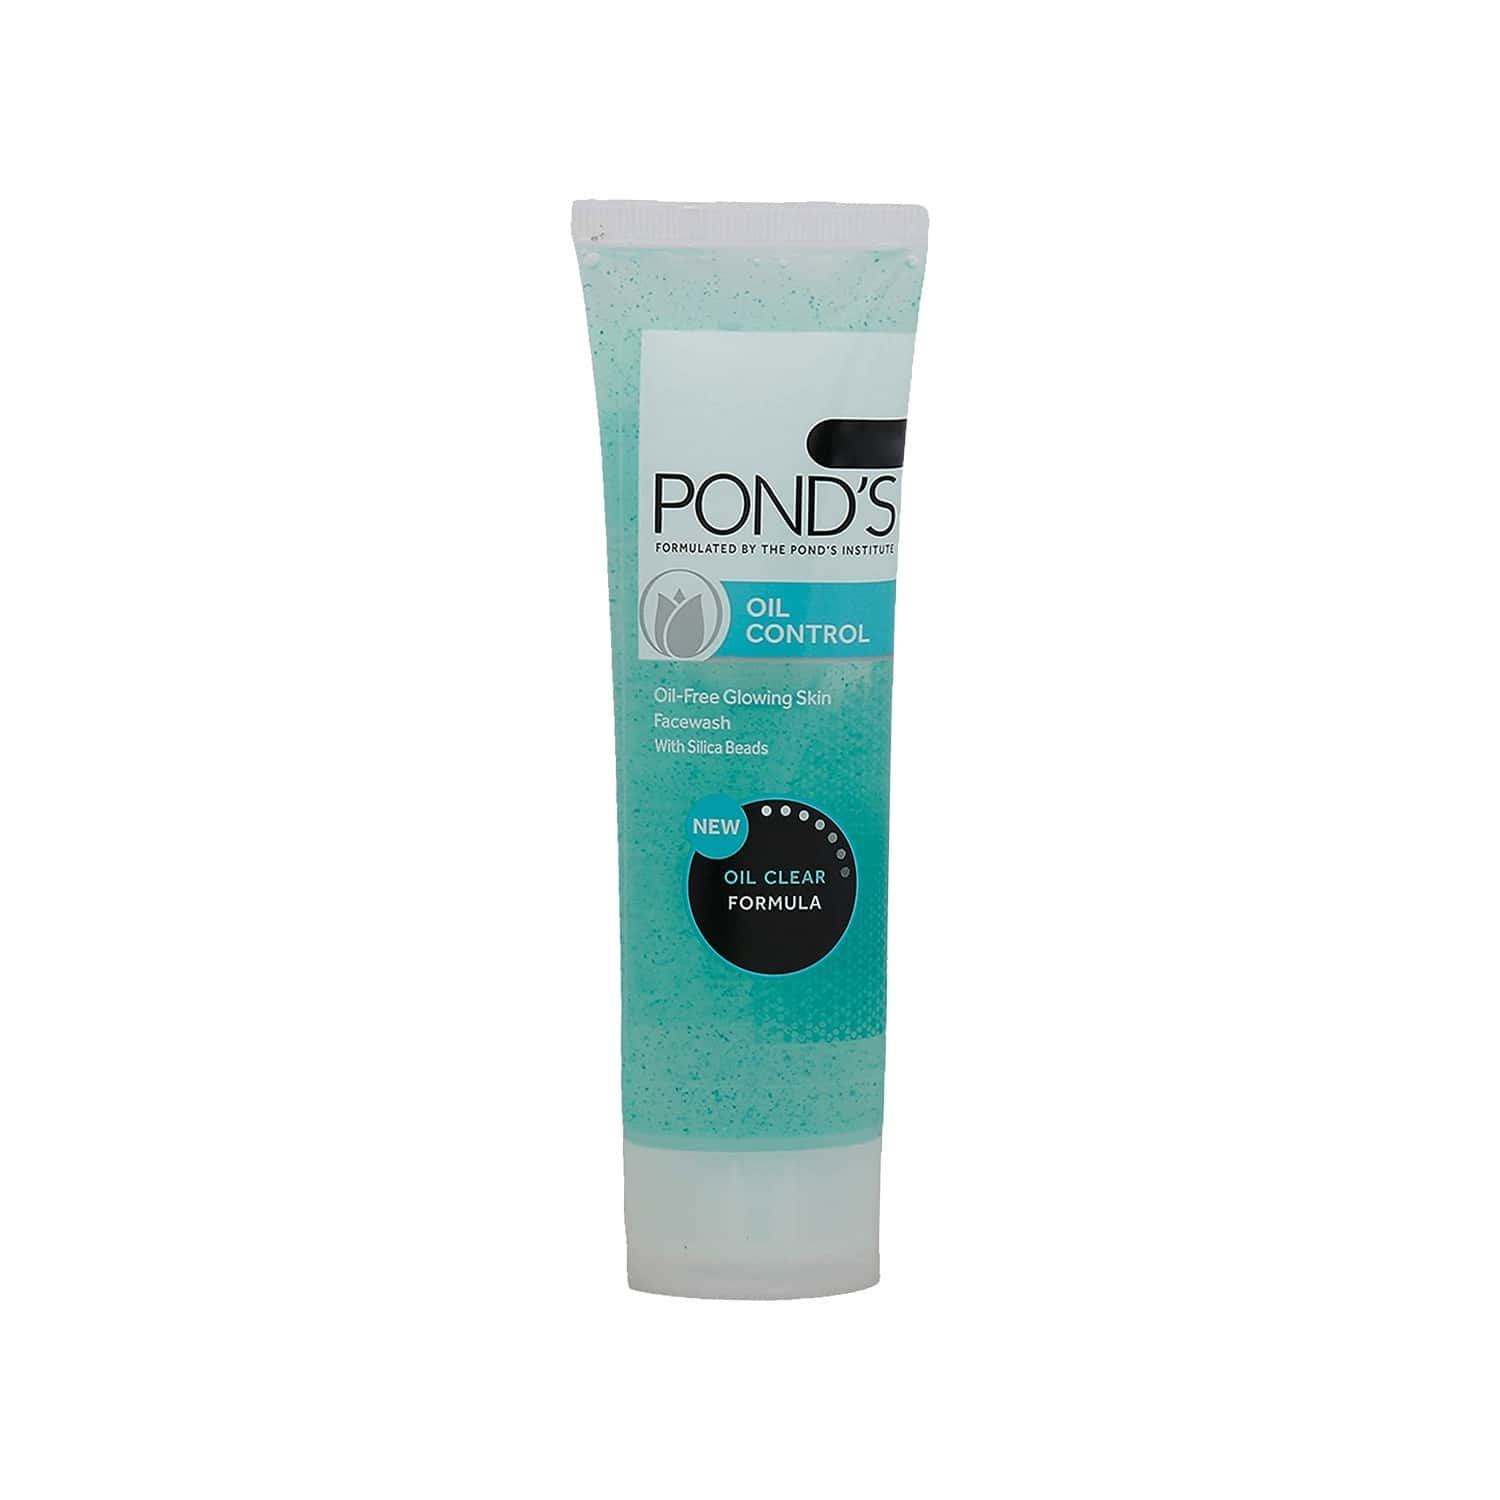 Pond's Oil Control Face Wash-50g